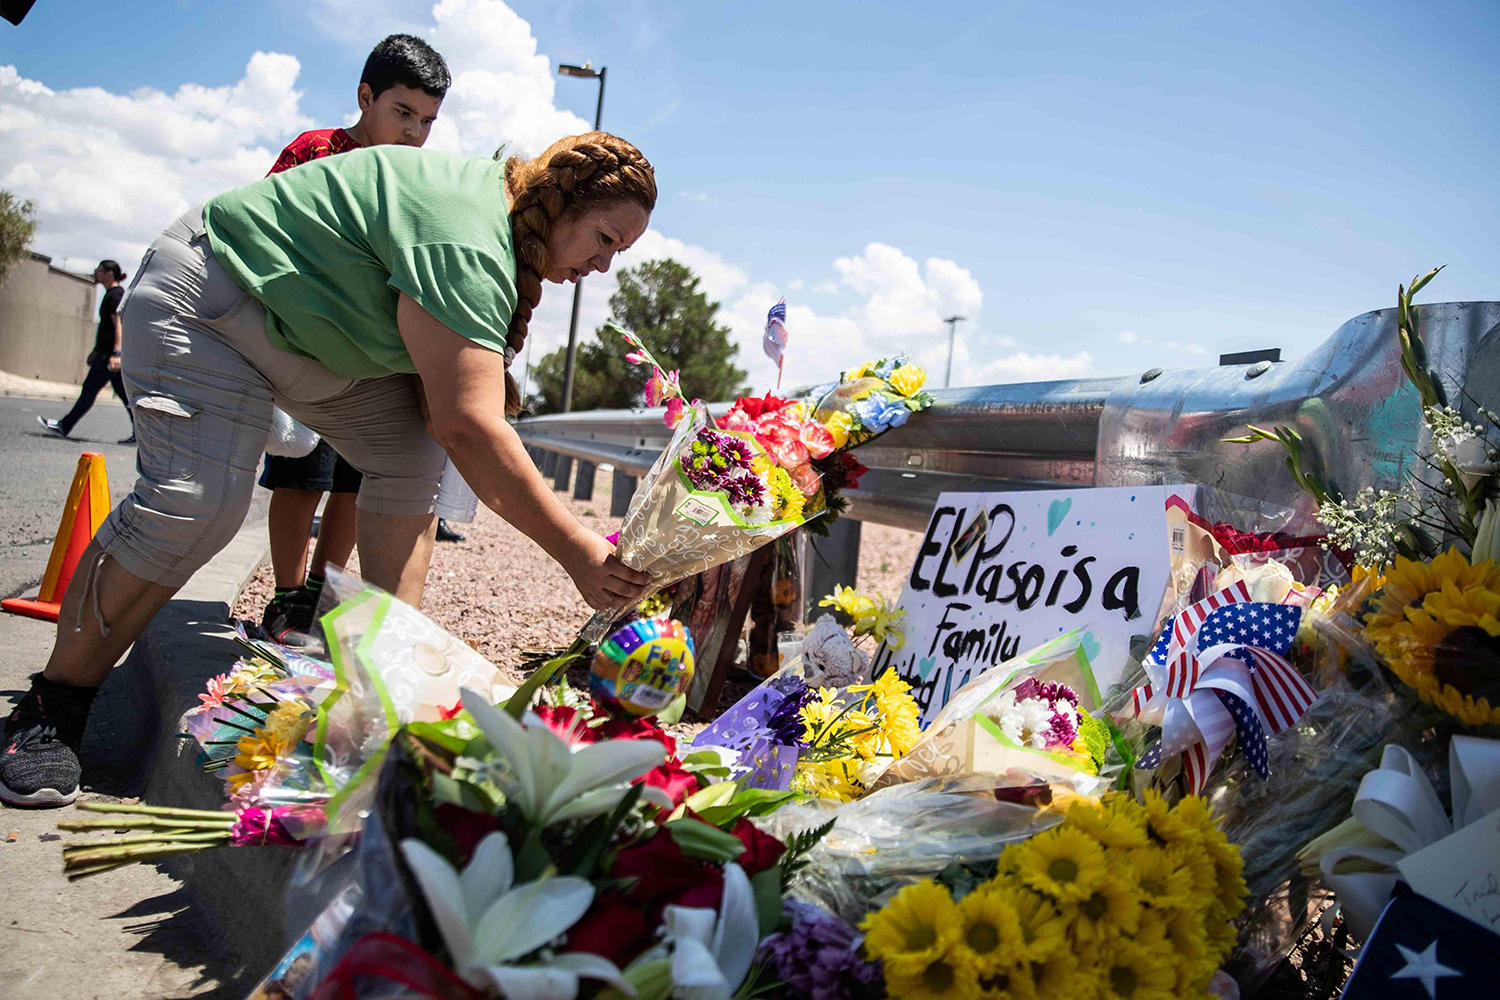 Carmen Roldan brings some flowers to honor the memory of the victims of the mass shooting occurred in Walmart on Saturday morning in El Paso on Sunday, August 4, 2019. [LOLA GOMEZ / AMERICAN-STATESMAN]